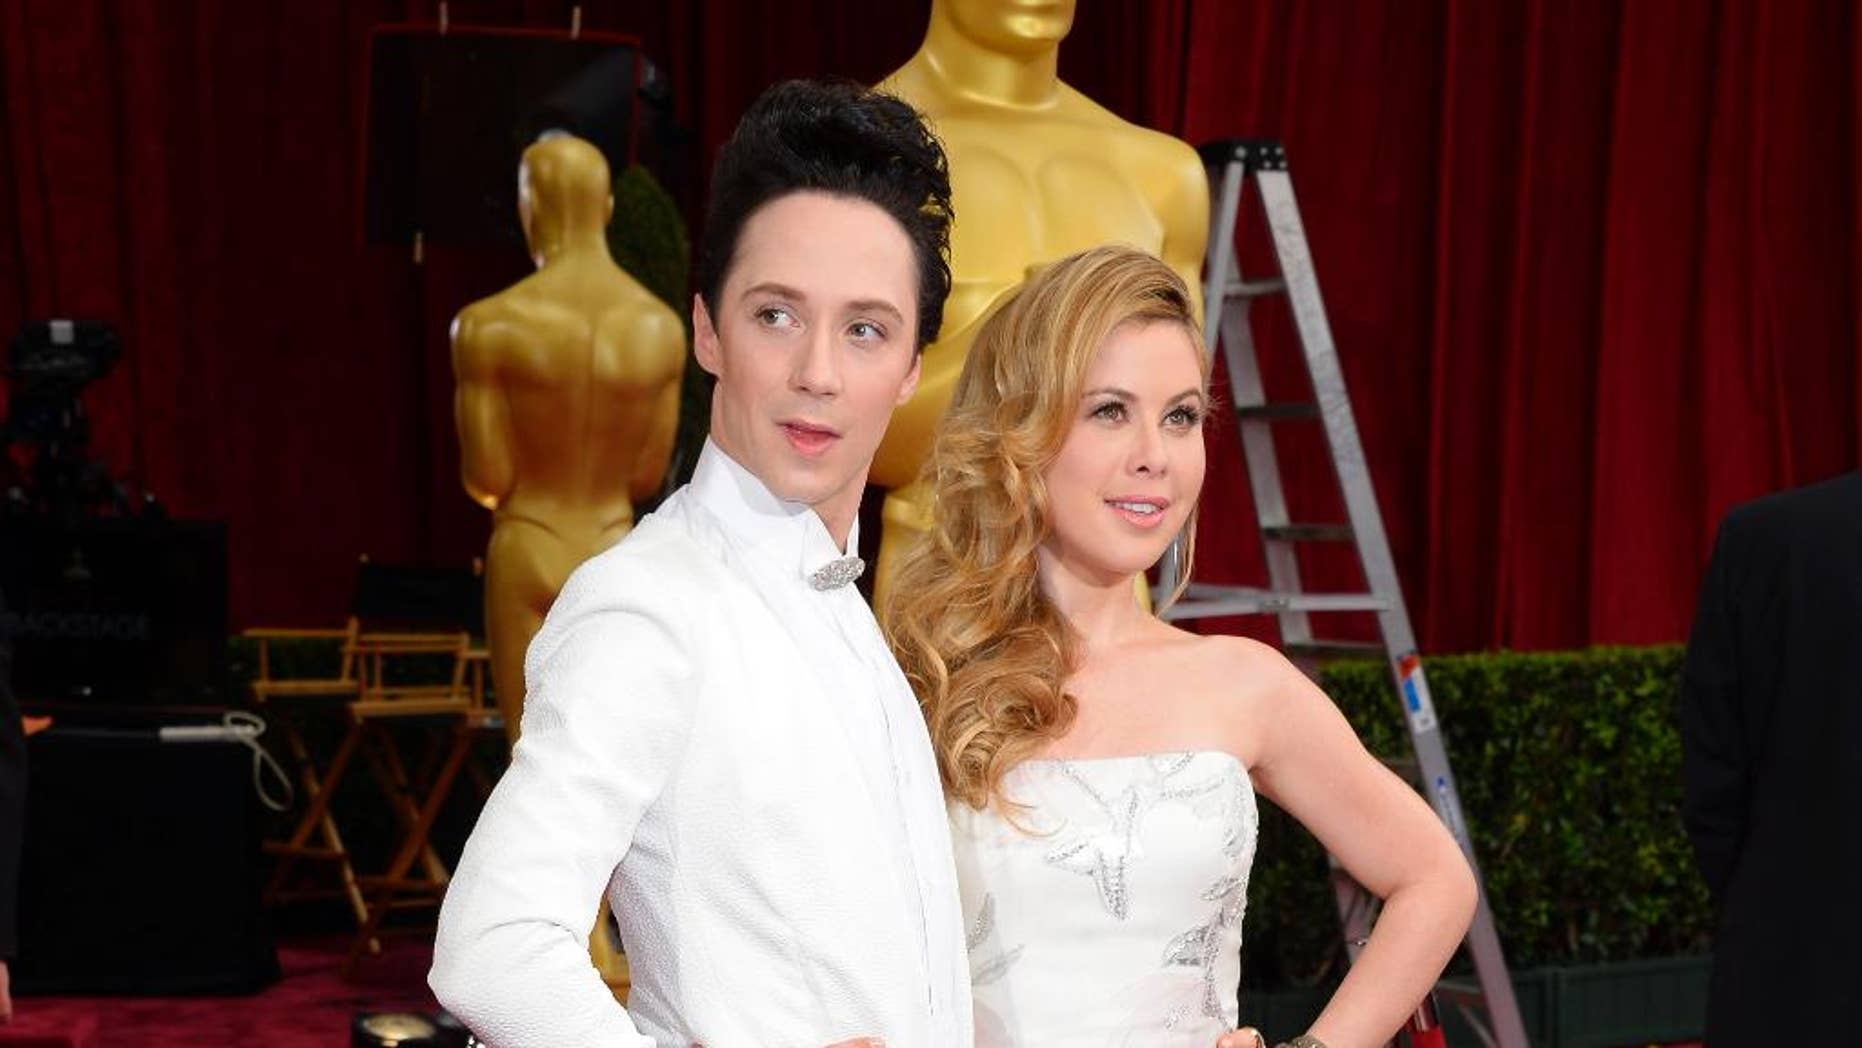 FILE - This March 2, 2014, file photo shows Johnny Weir, left, and Tara Lipinski at the Oscars in Los Angeles. NBC is promoting Weir and Lipinski to its top figure skating broadcasting team. The network said Wednesday, Oct. 22, 2014,  that the two former Olympians and play-by-play announcer Terry Gannon will take over the role starting with this week's Skate America.  (Photo by Dan Steinberg/Invision/AP, File)